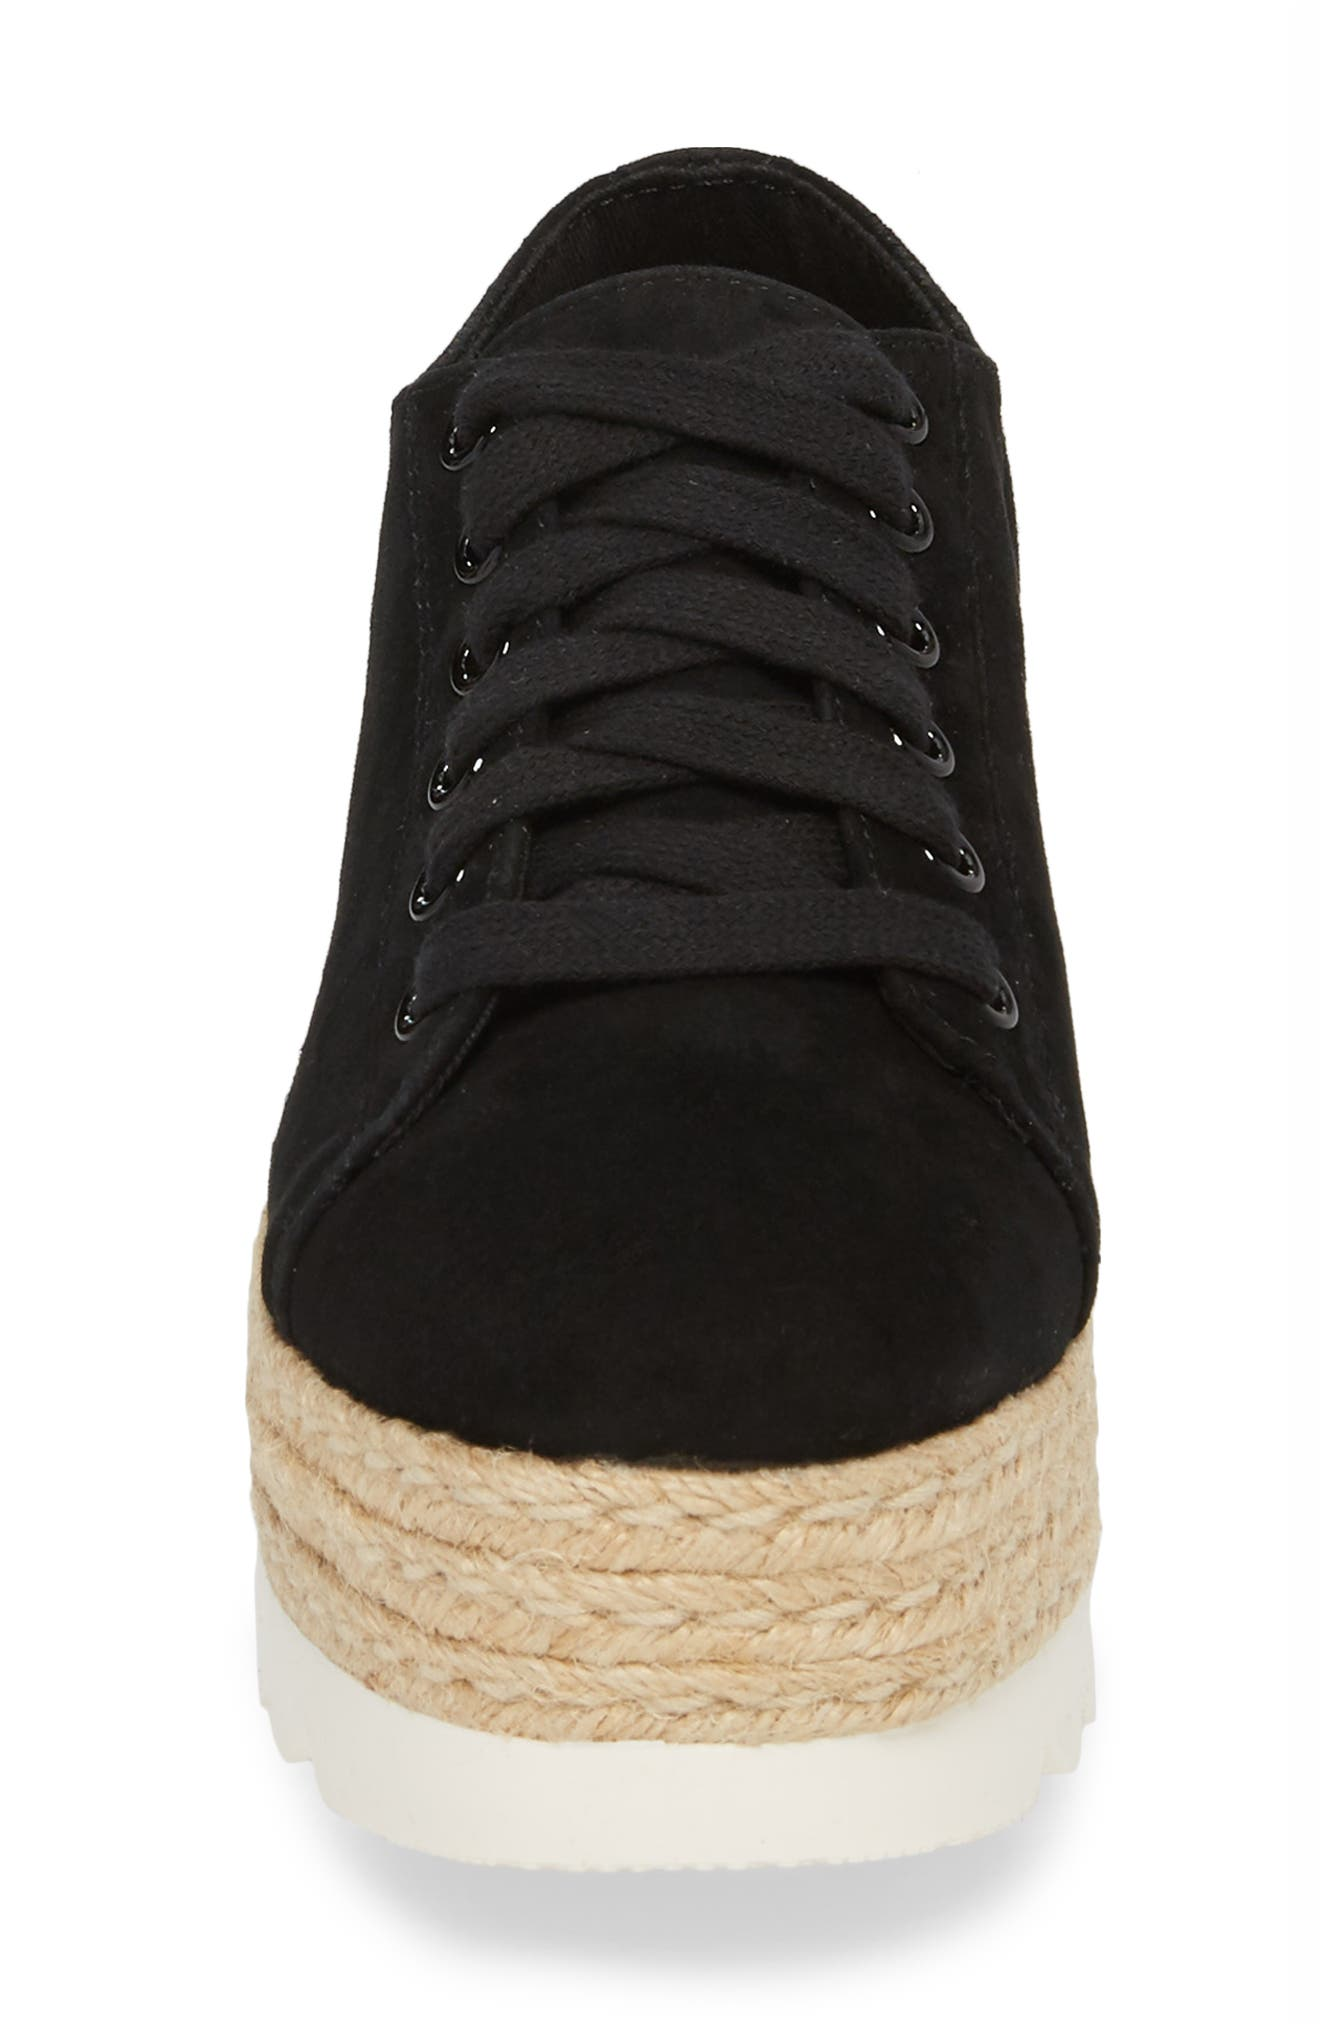 Karma Espadrille Platform Sneaker,                             Alternate thumbnail 4, color,                             Black Sued